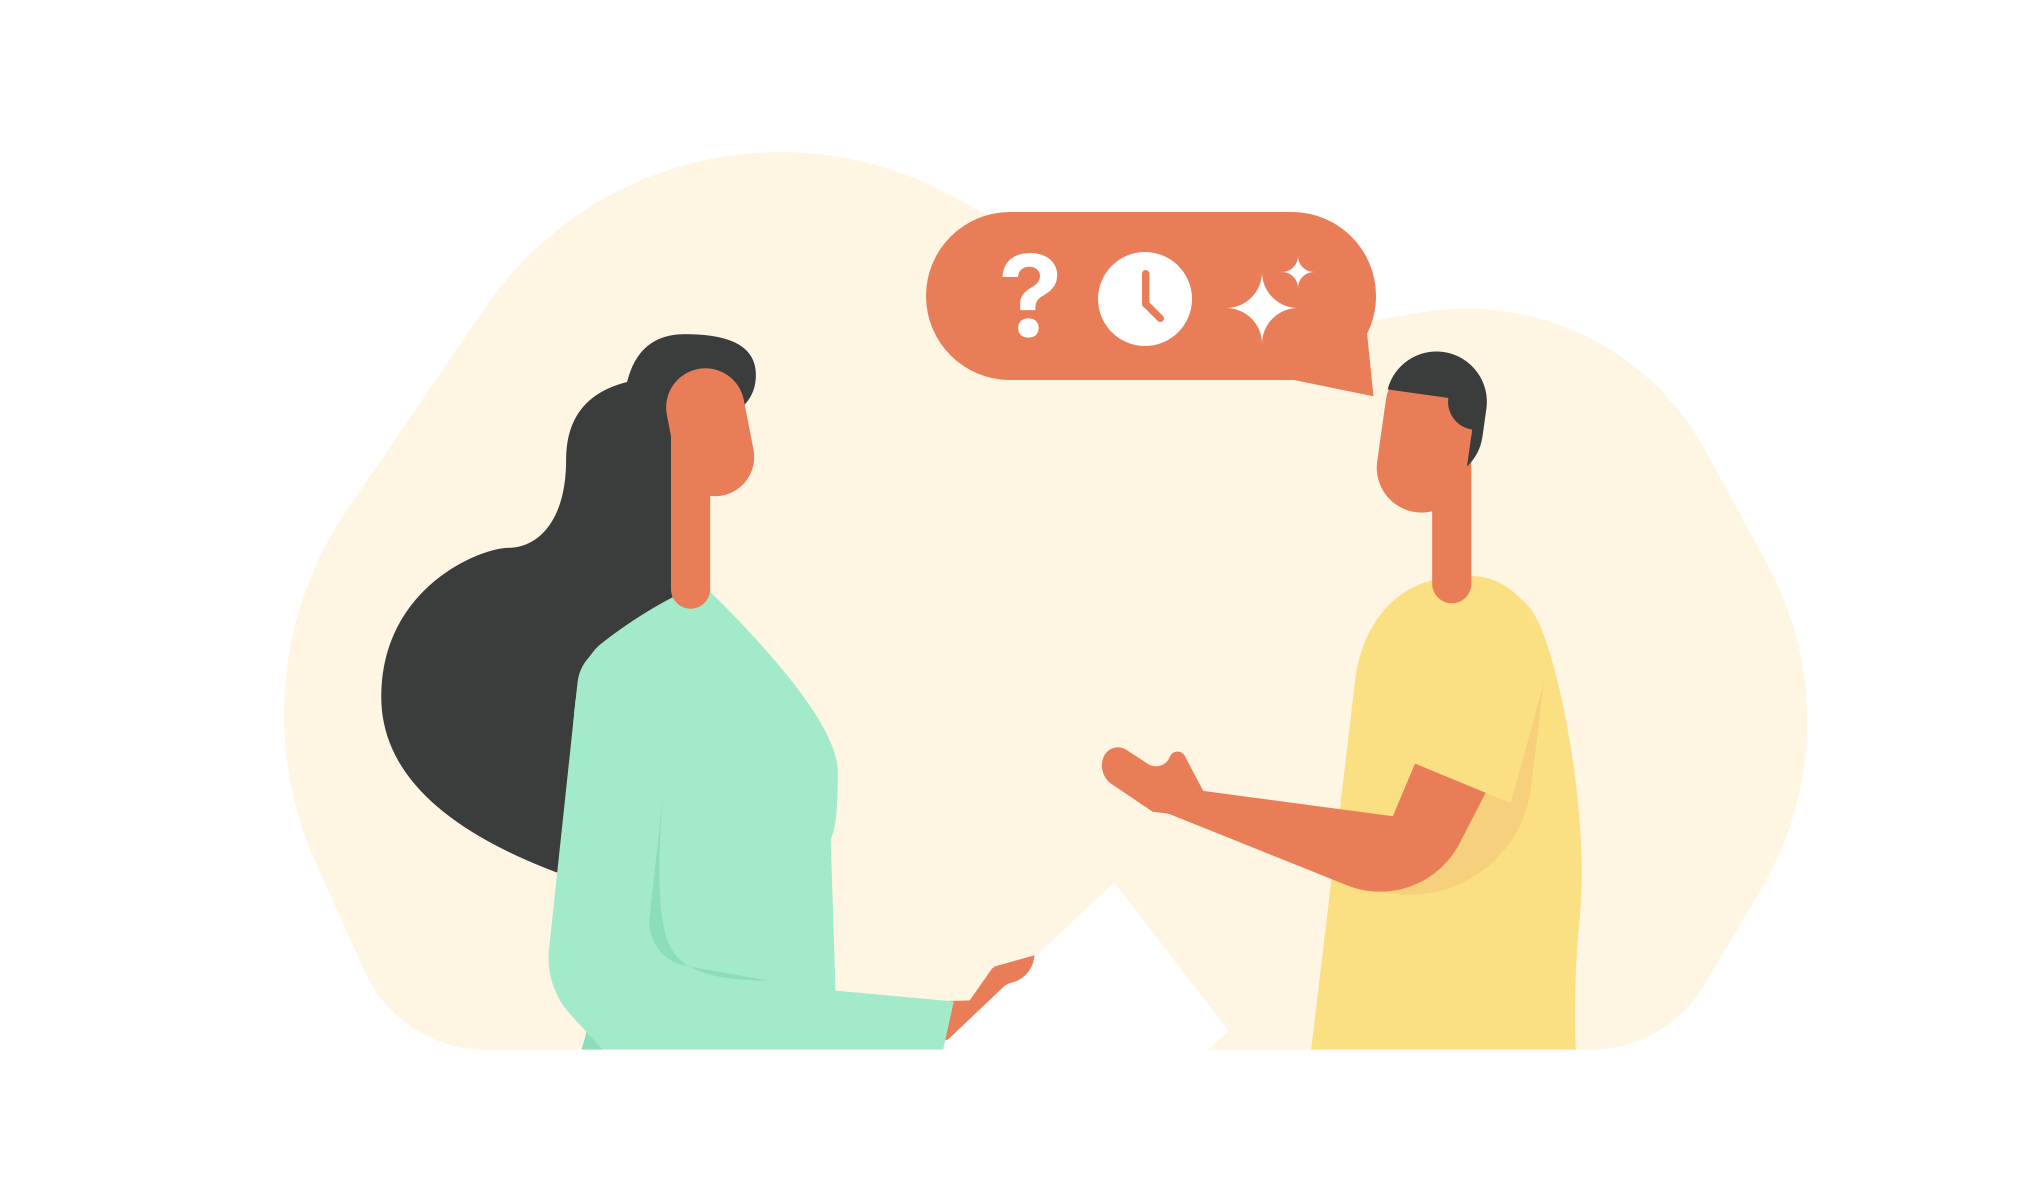 Losing Credibility With Customers with no feedbacks or surveys